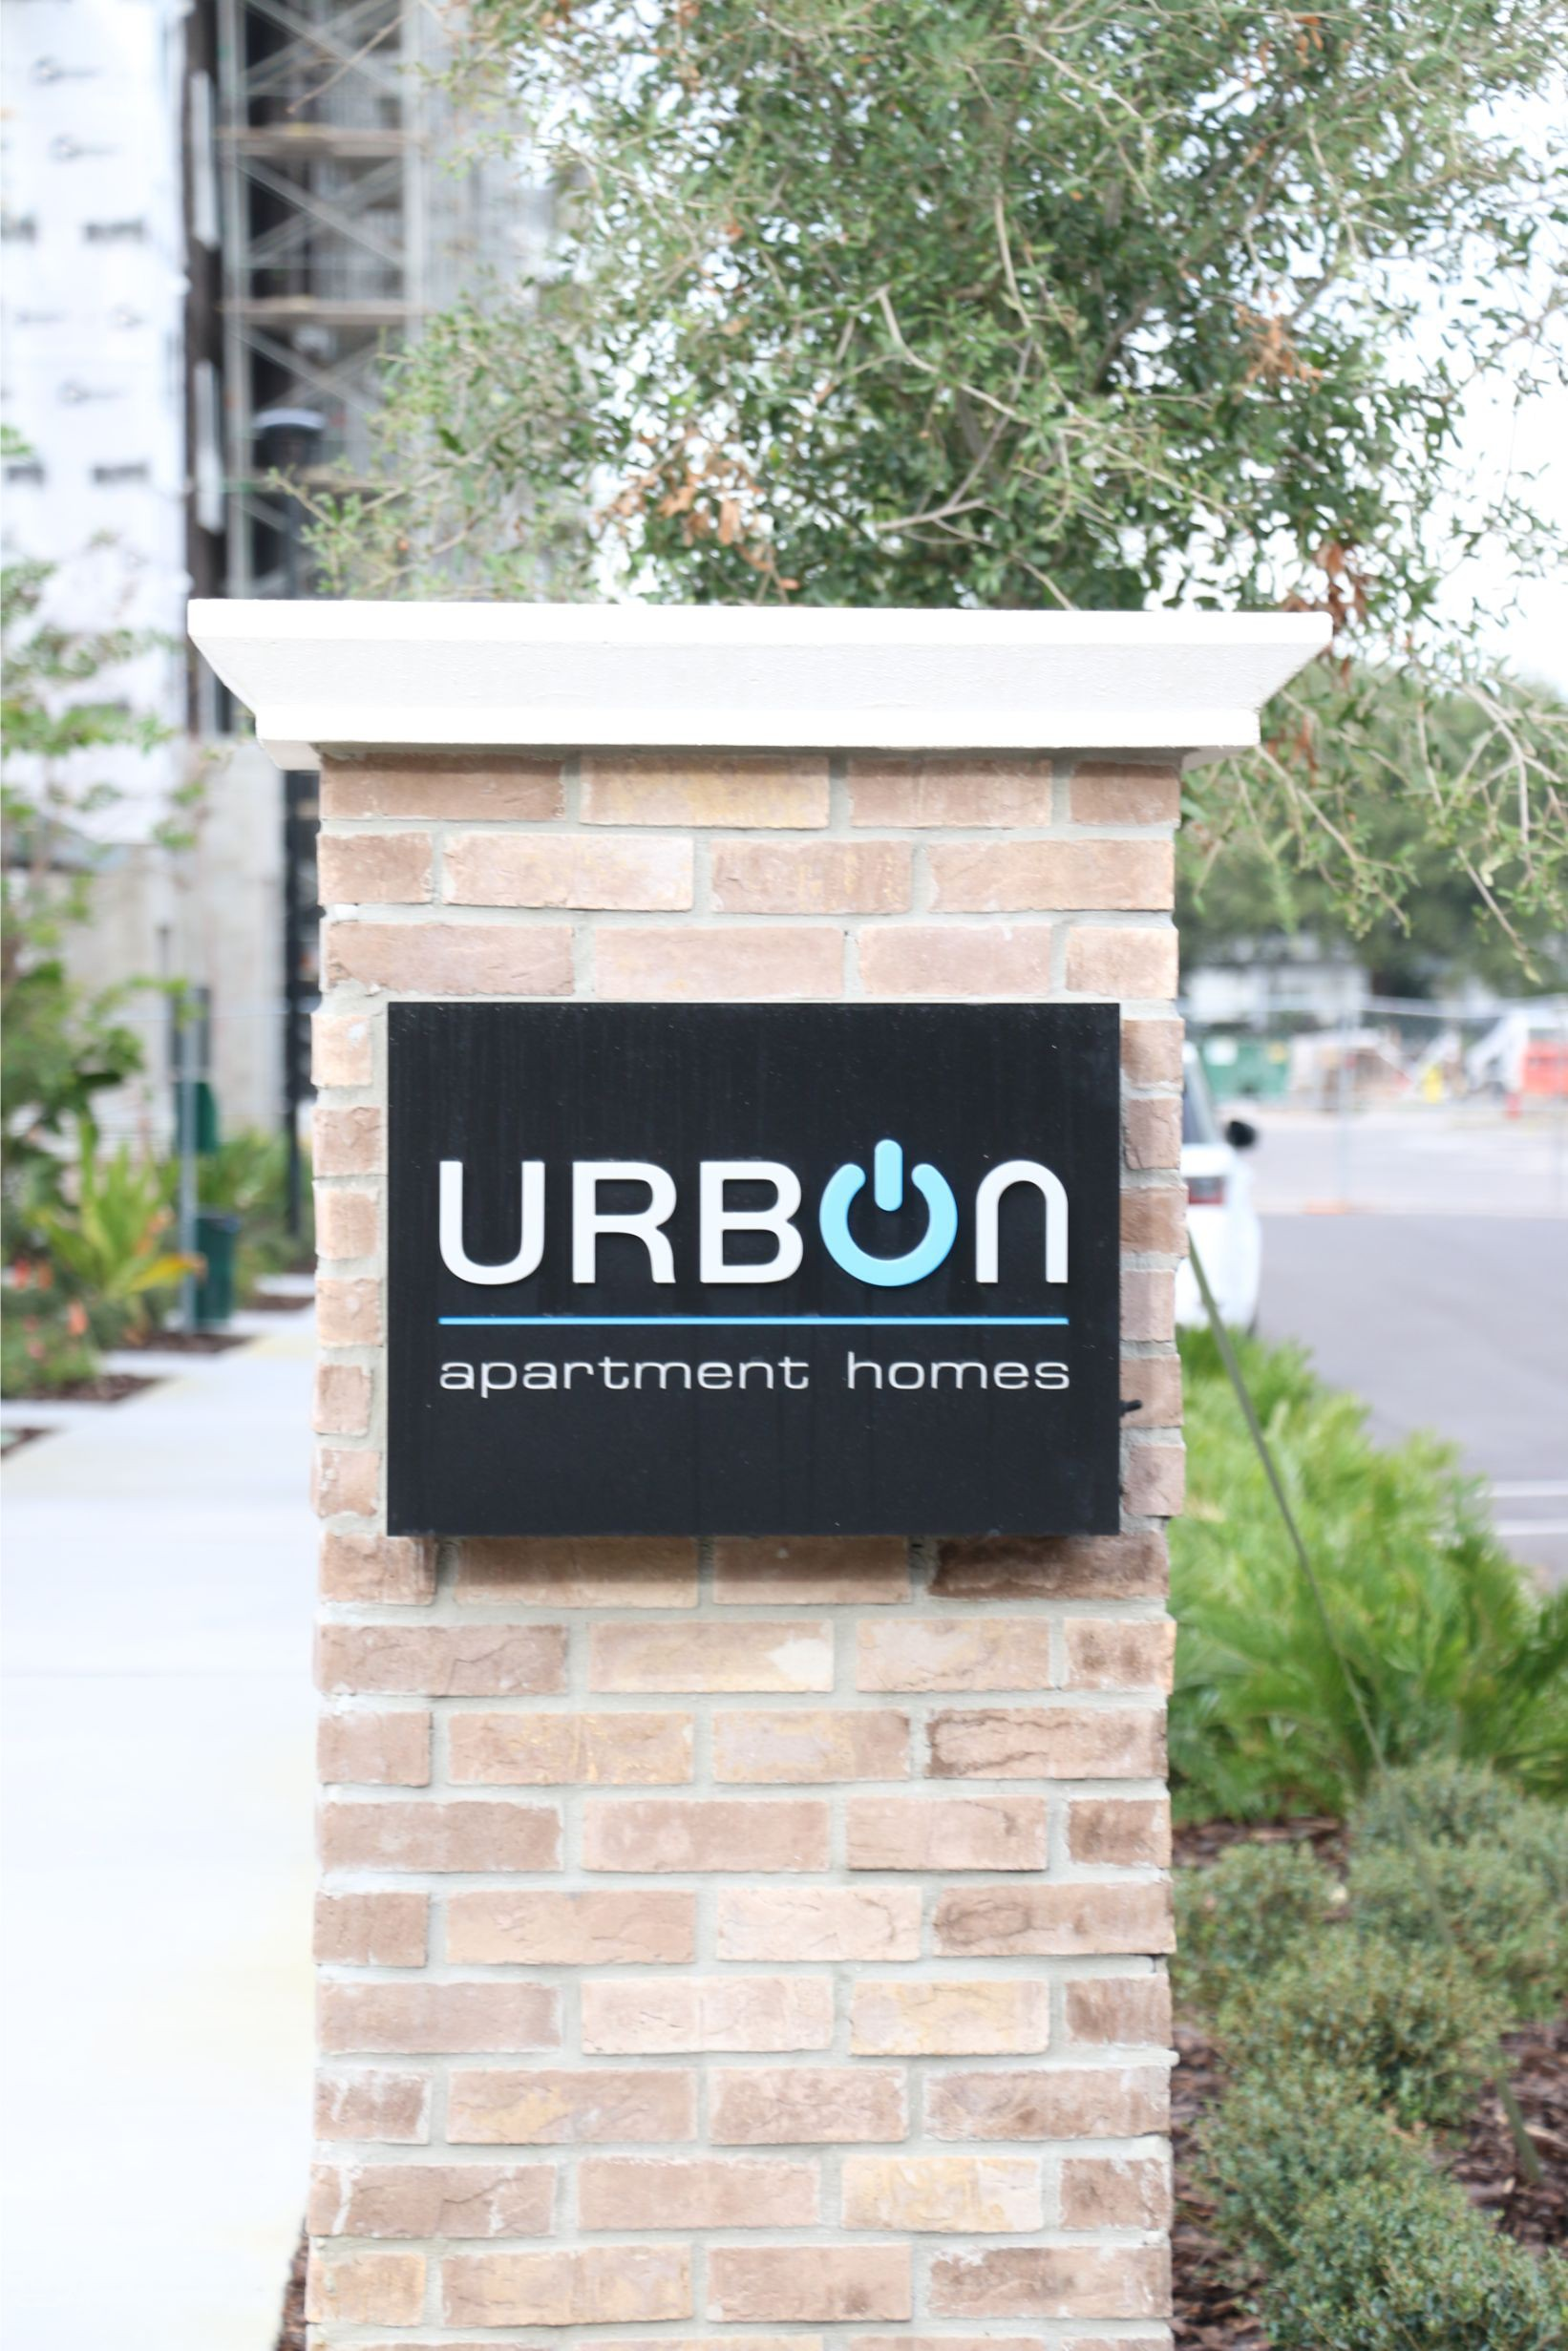 Urbon Apartment Homes